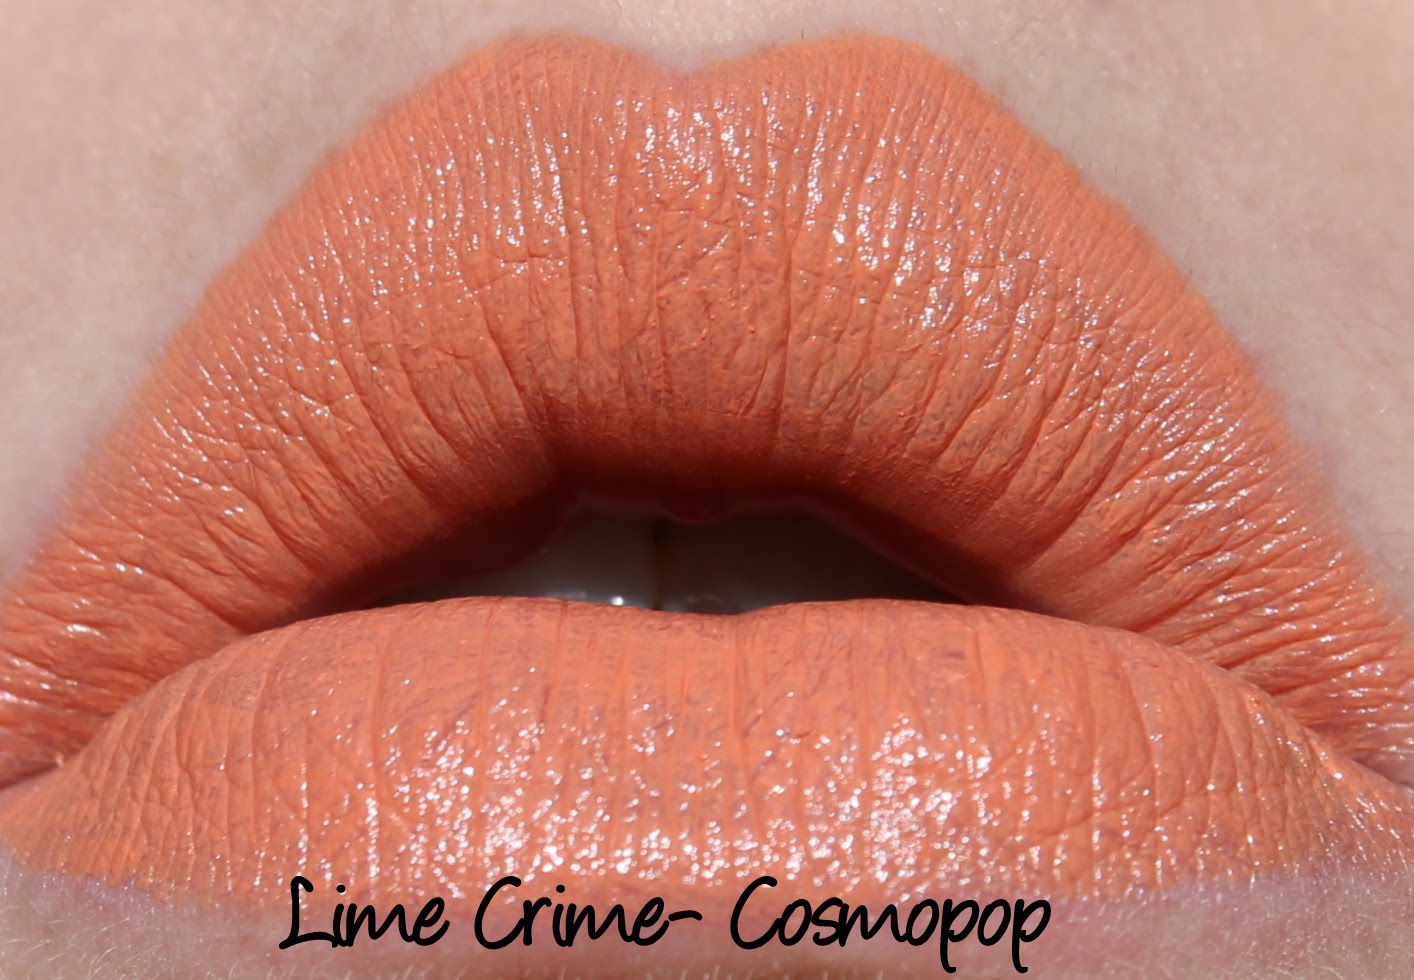 Lime Crime Cosmopop Lipstick Swatch